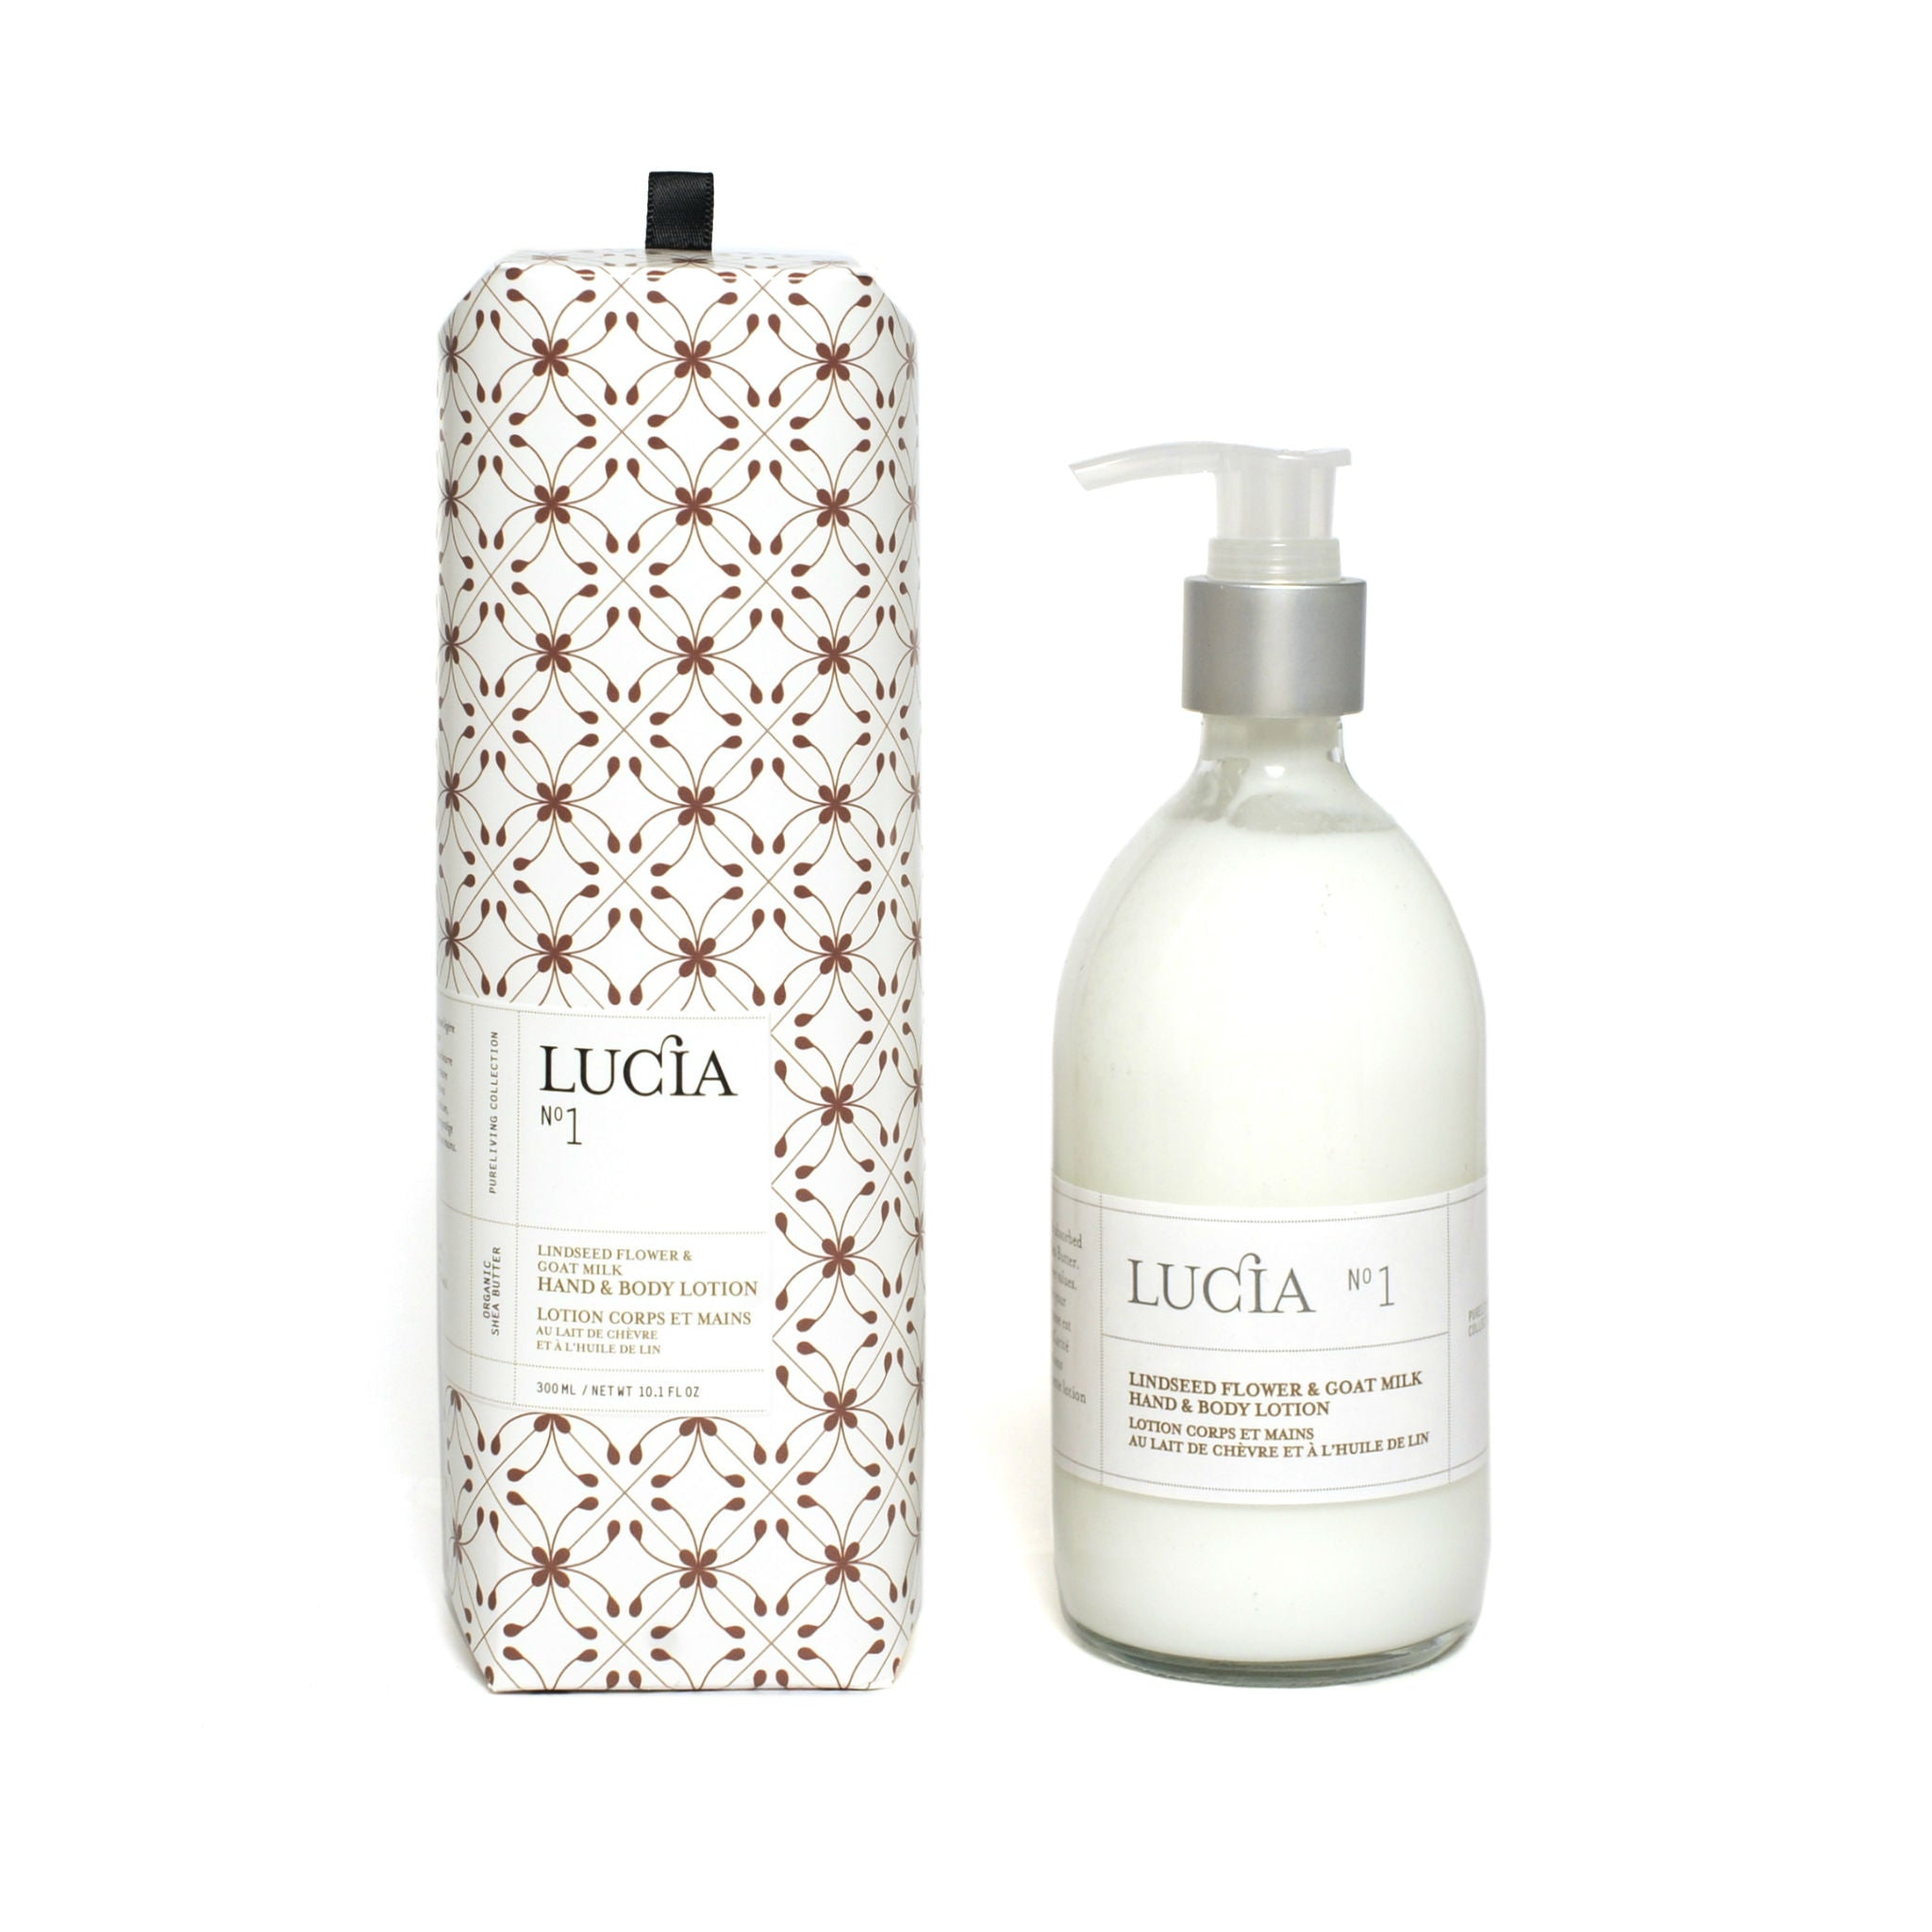 Linseed Flower & Goat Milk, Hand & Body Lotion, LUCIA-VONMEL Luxe Gifts